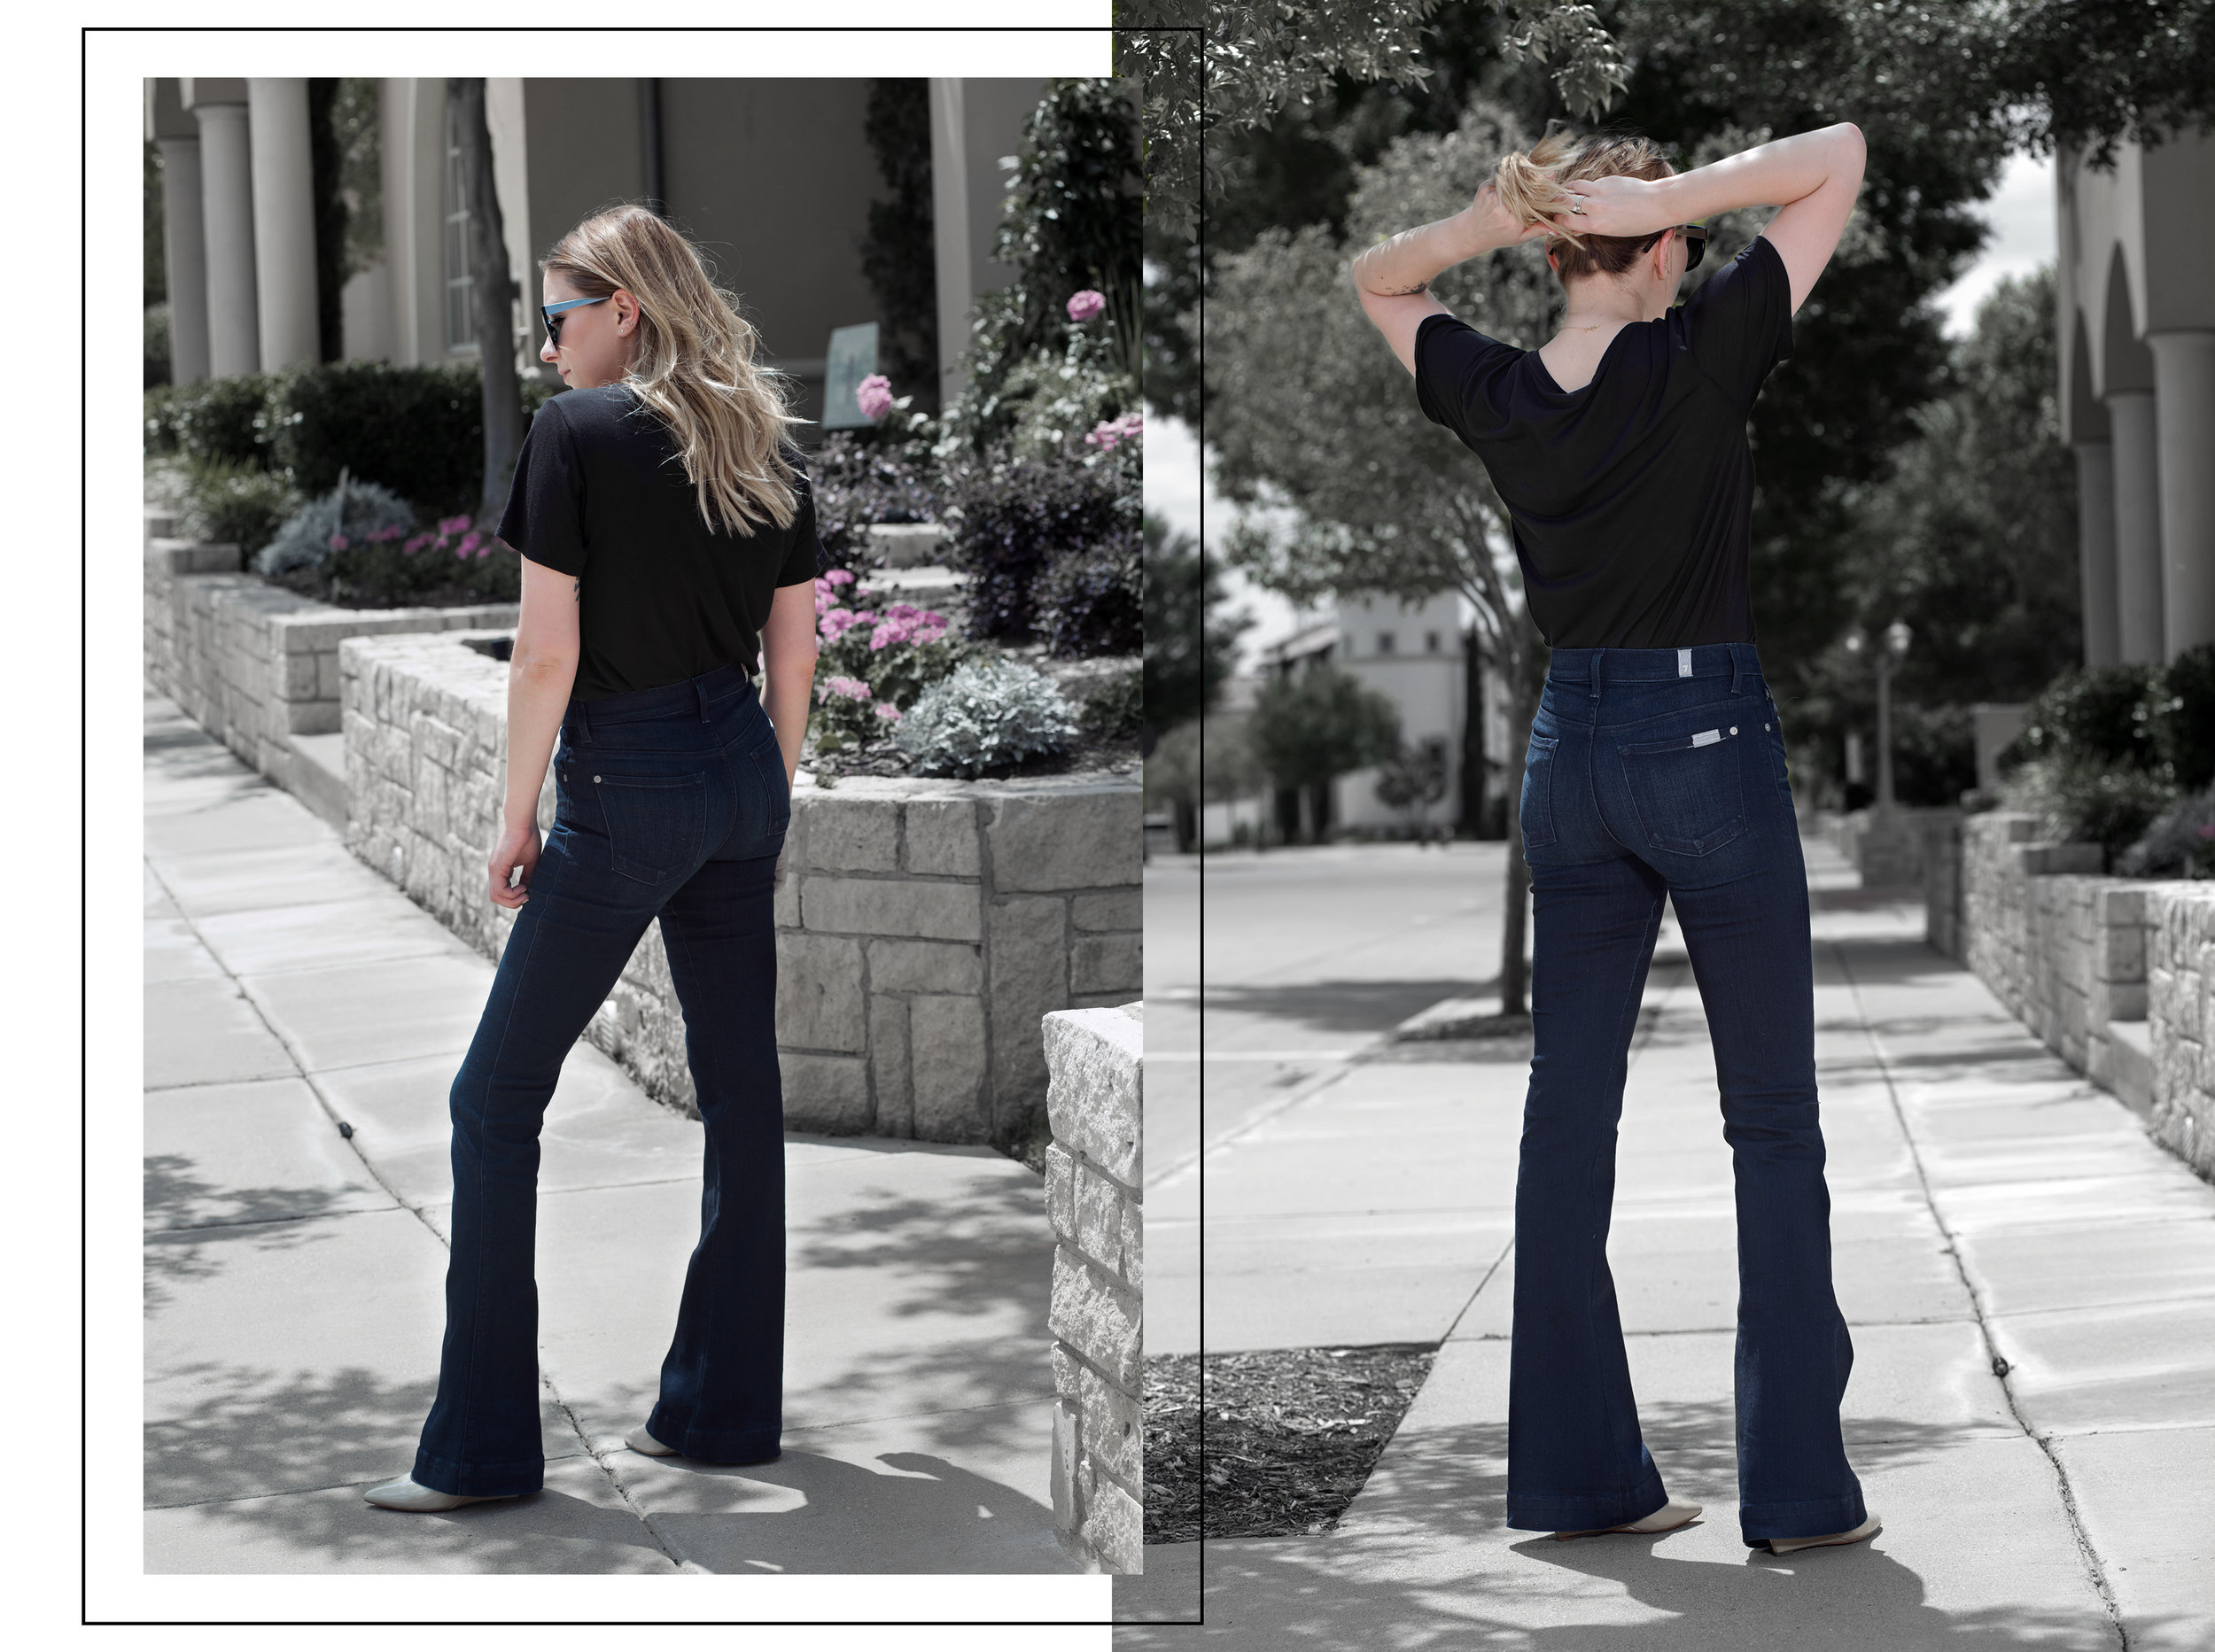 7 FOR ALL MANKIND flared jeans silent imagery with AG v-neck tee